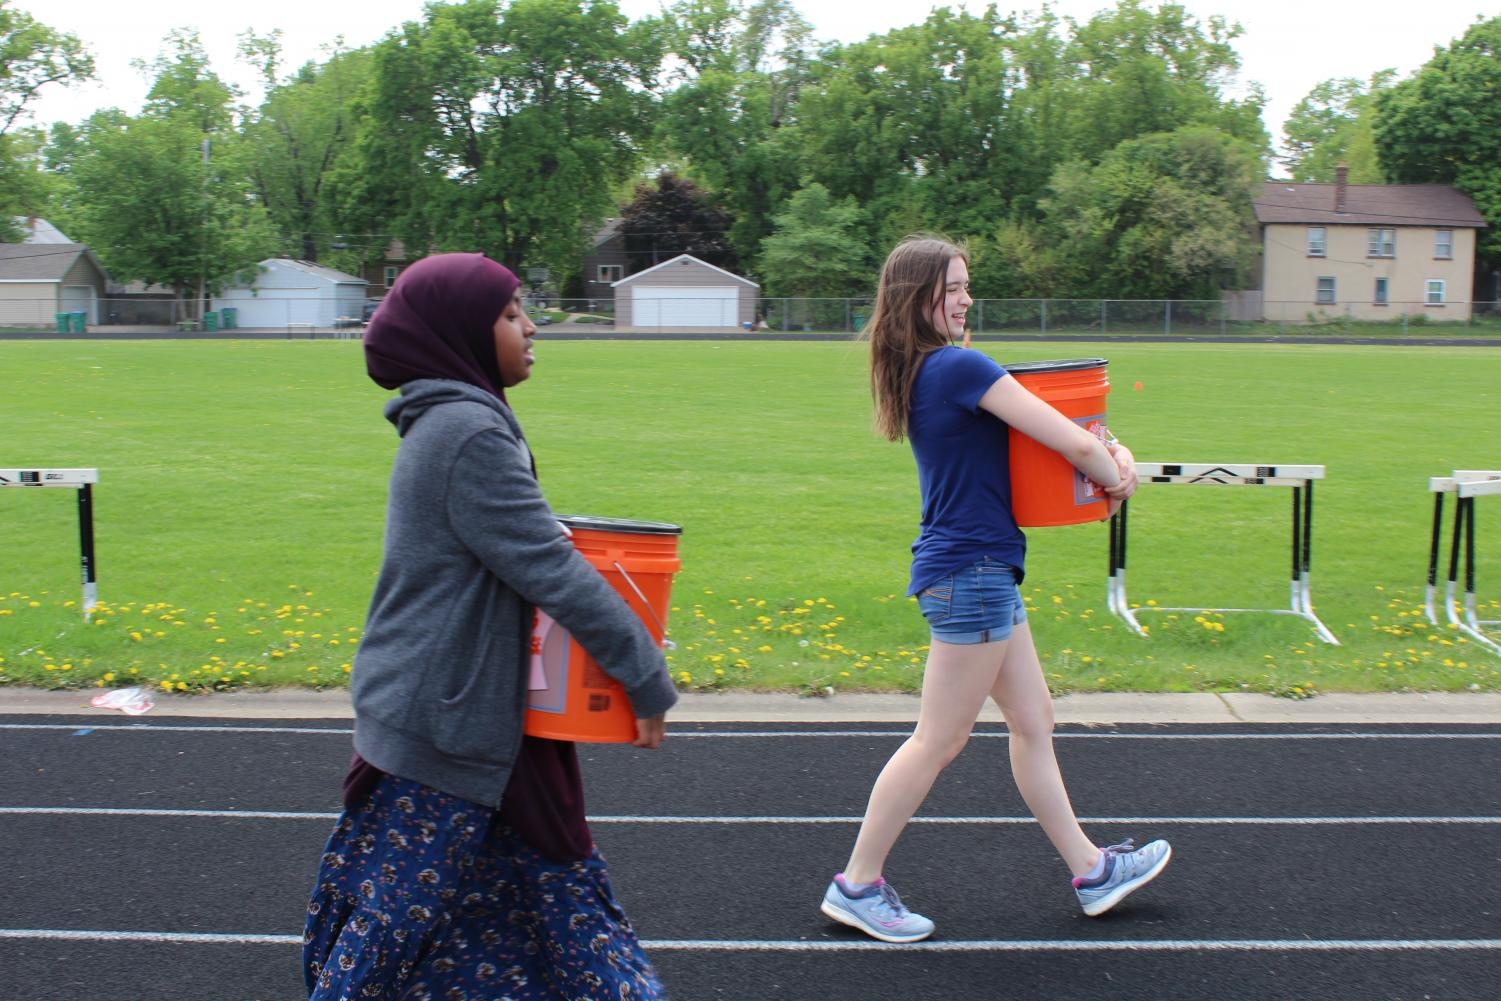 Freshmen Iqra Abdi and Courtney Hanson carry five-gallon buckets of water around the track as part of a scarcity simulation in their Civics/Economics class May 22.